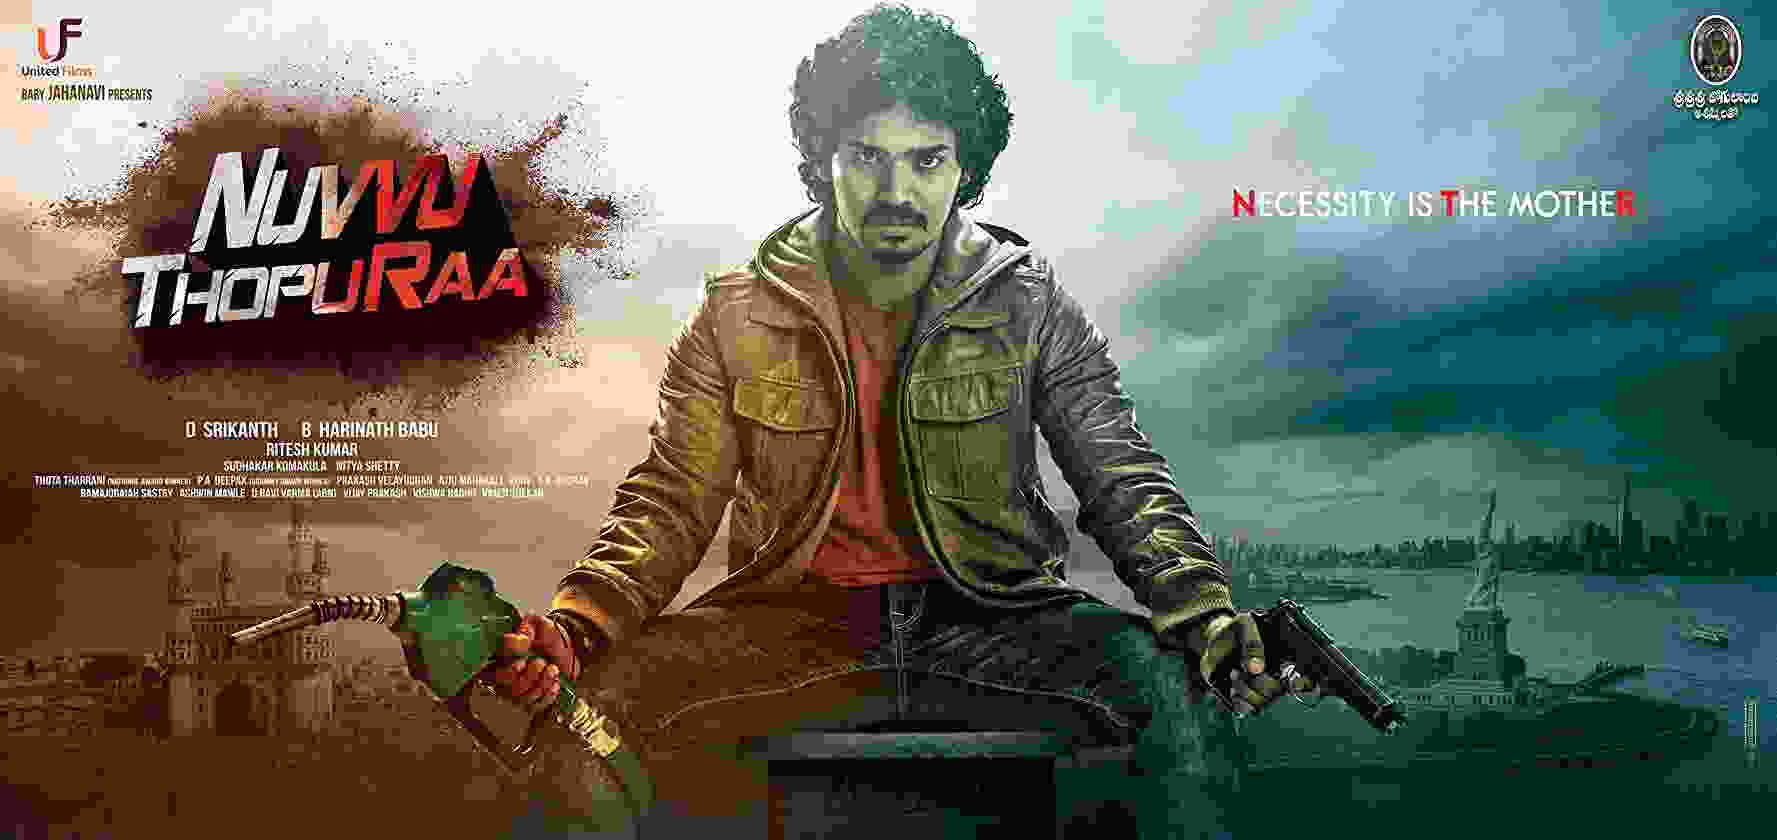 Nuvvu Thopu Raa Full Movie Download